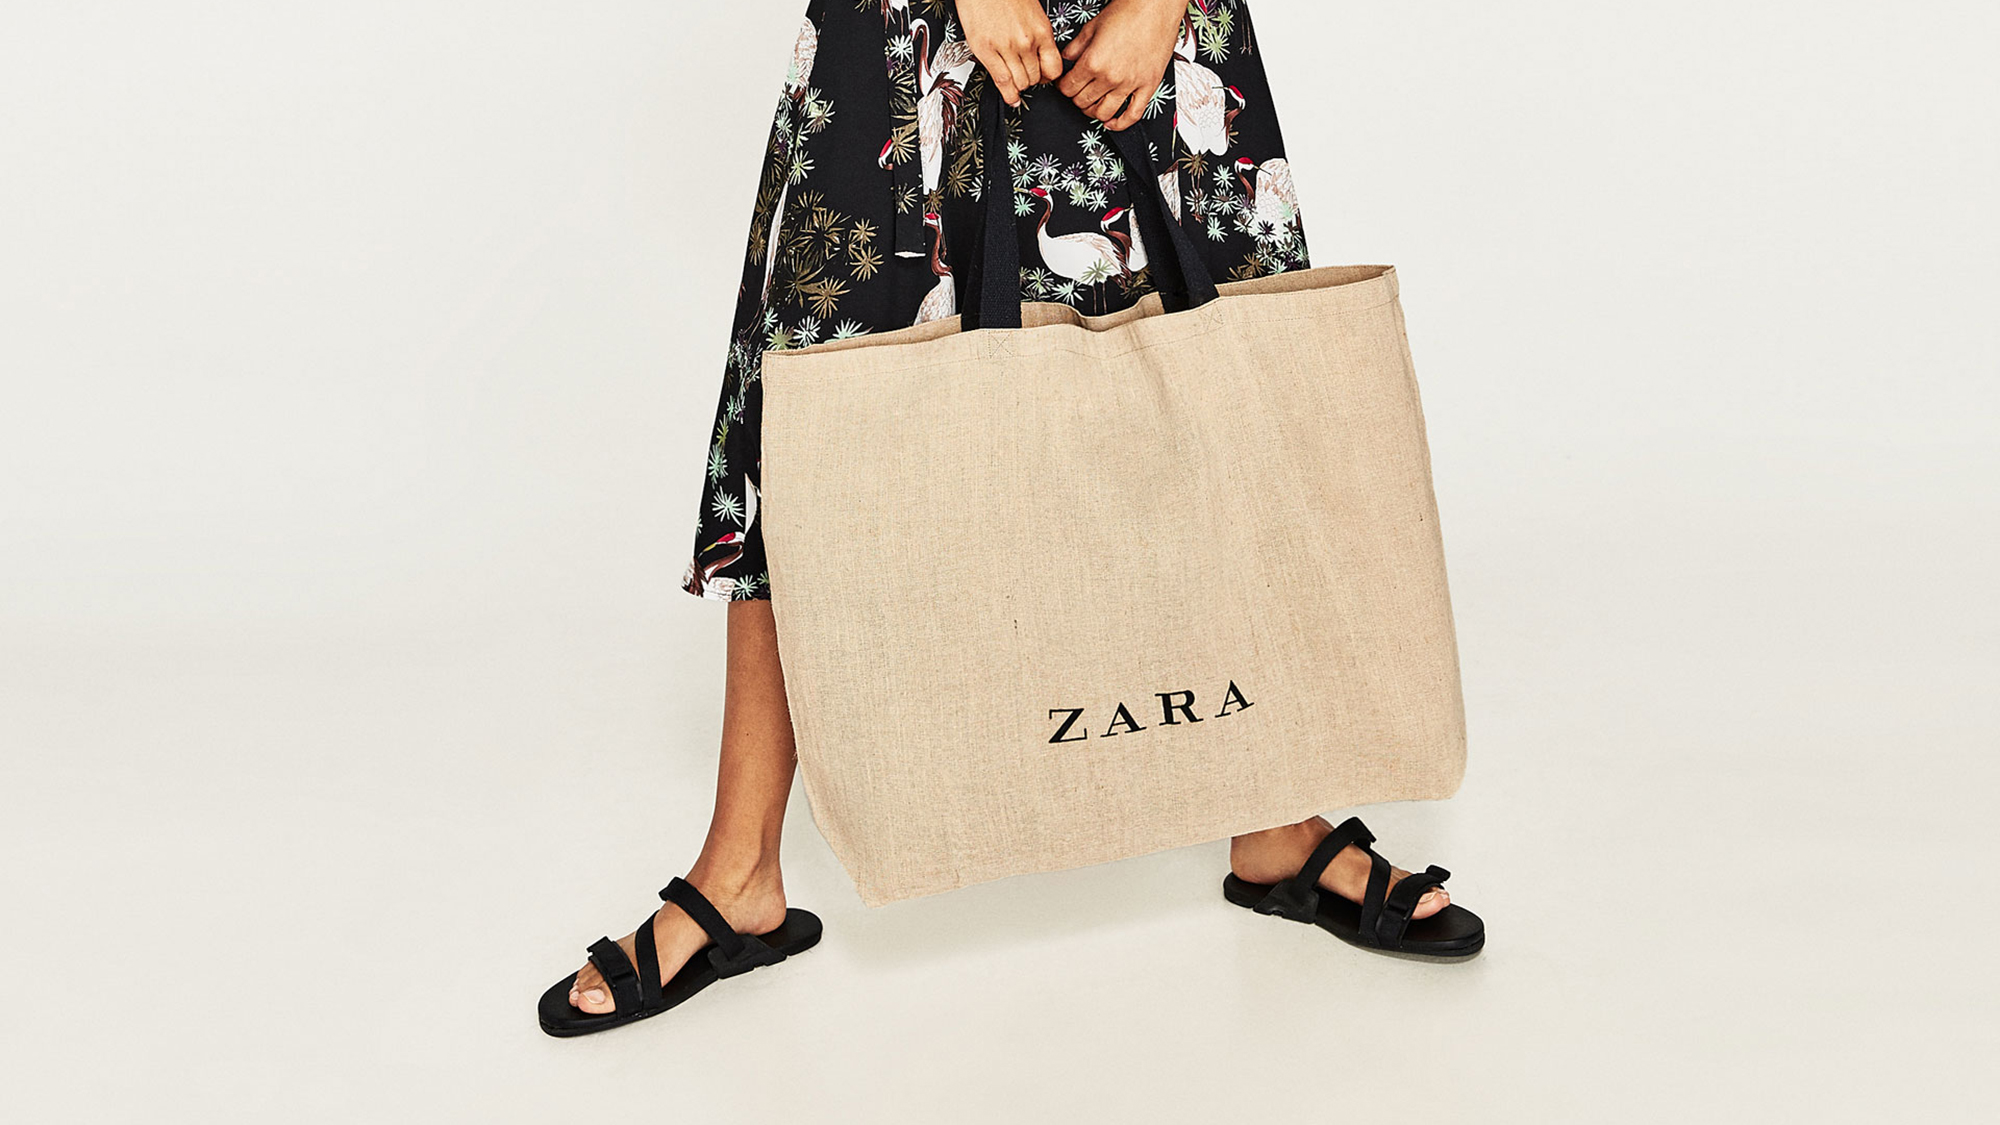 You'll never guess why Zara is called Zara